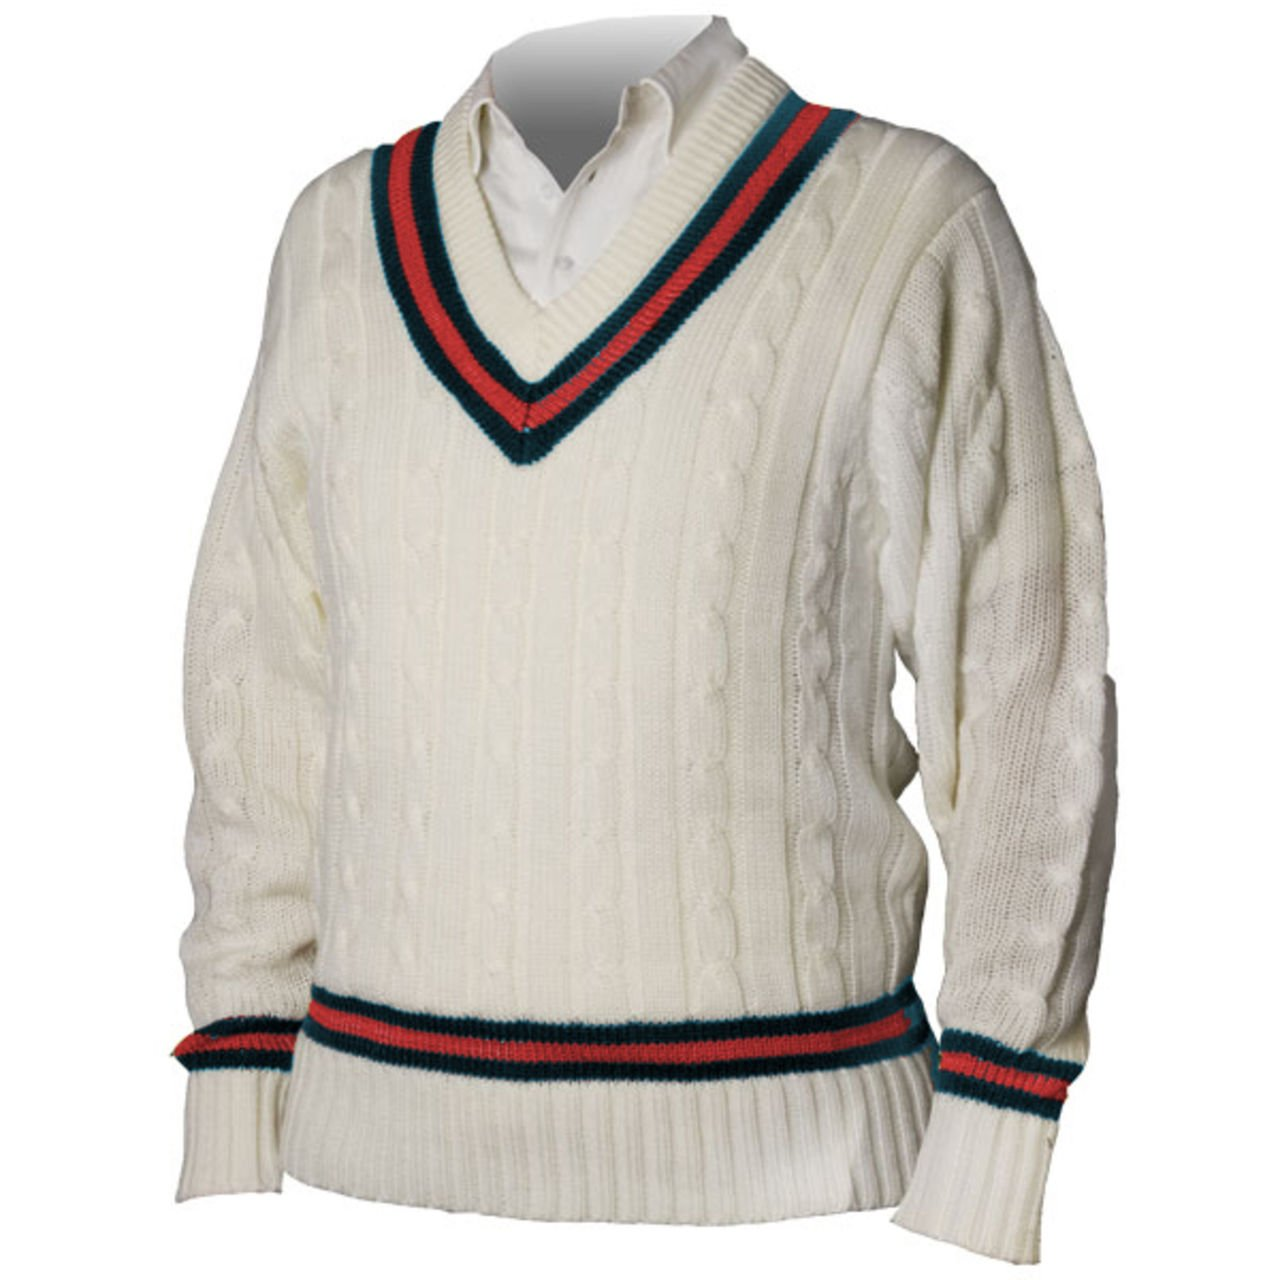 Men's Vintage Style Sweaters – 1920s to 1960s Cricket Full Sleeve Sweater Acrylic Navy/Red $59.36 AT vintagedancer.com